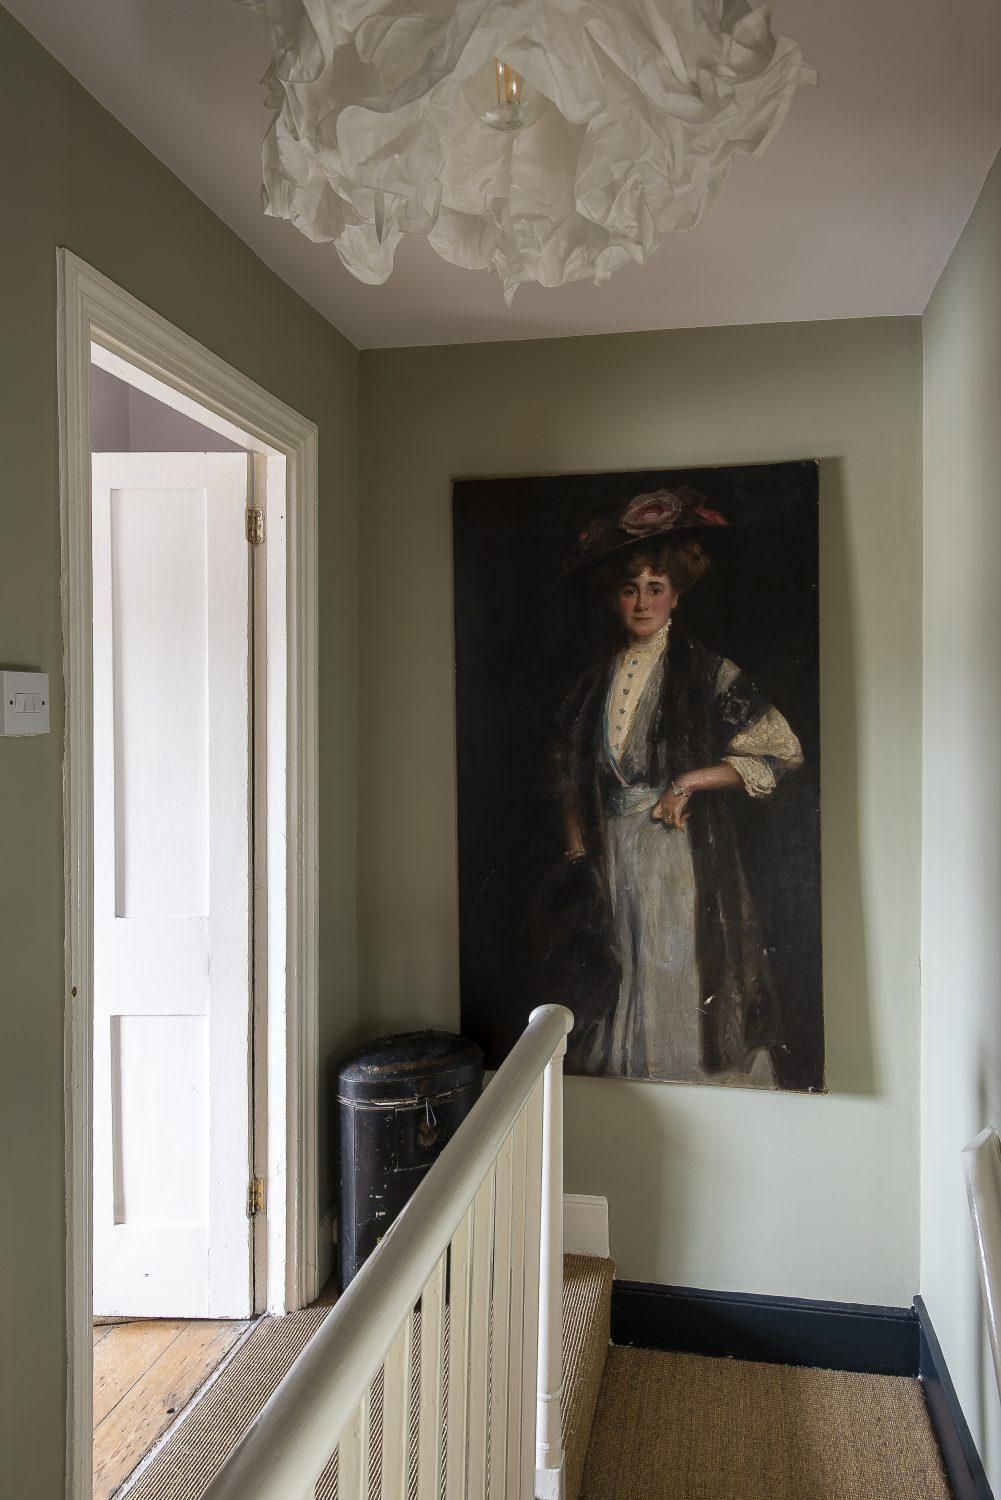 A large portrait of Lillie Langtry by Richard Jack hangs on the landing below another striking Ikea paper lampshade